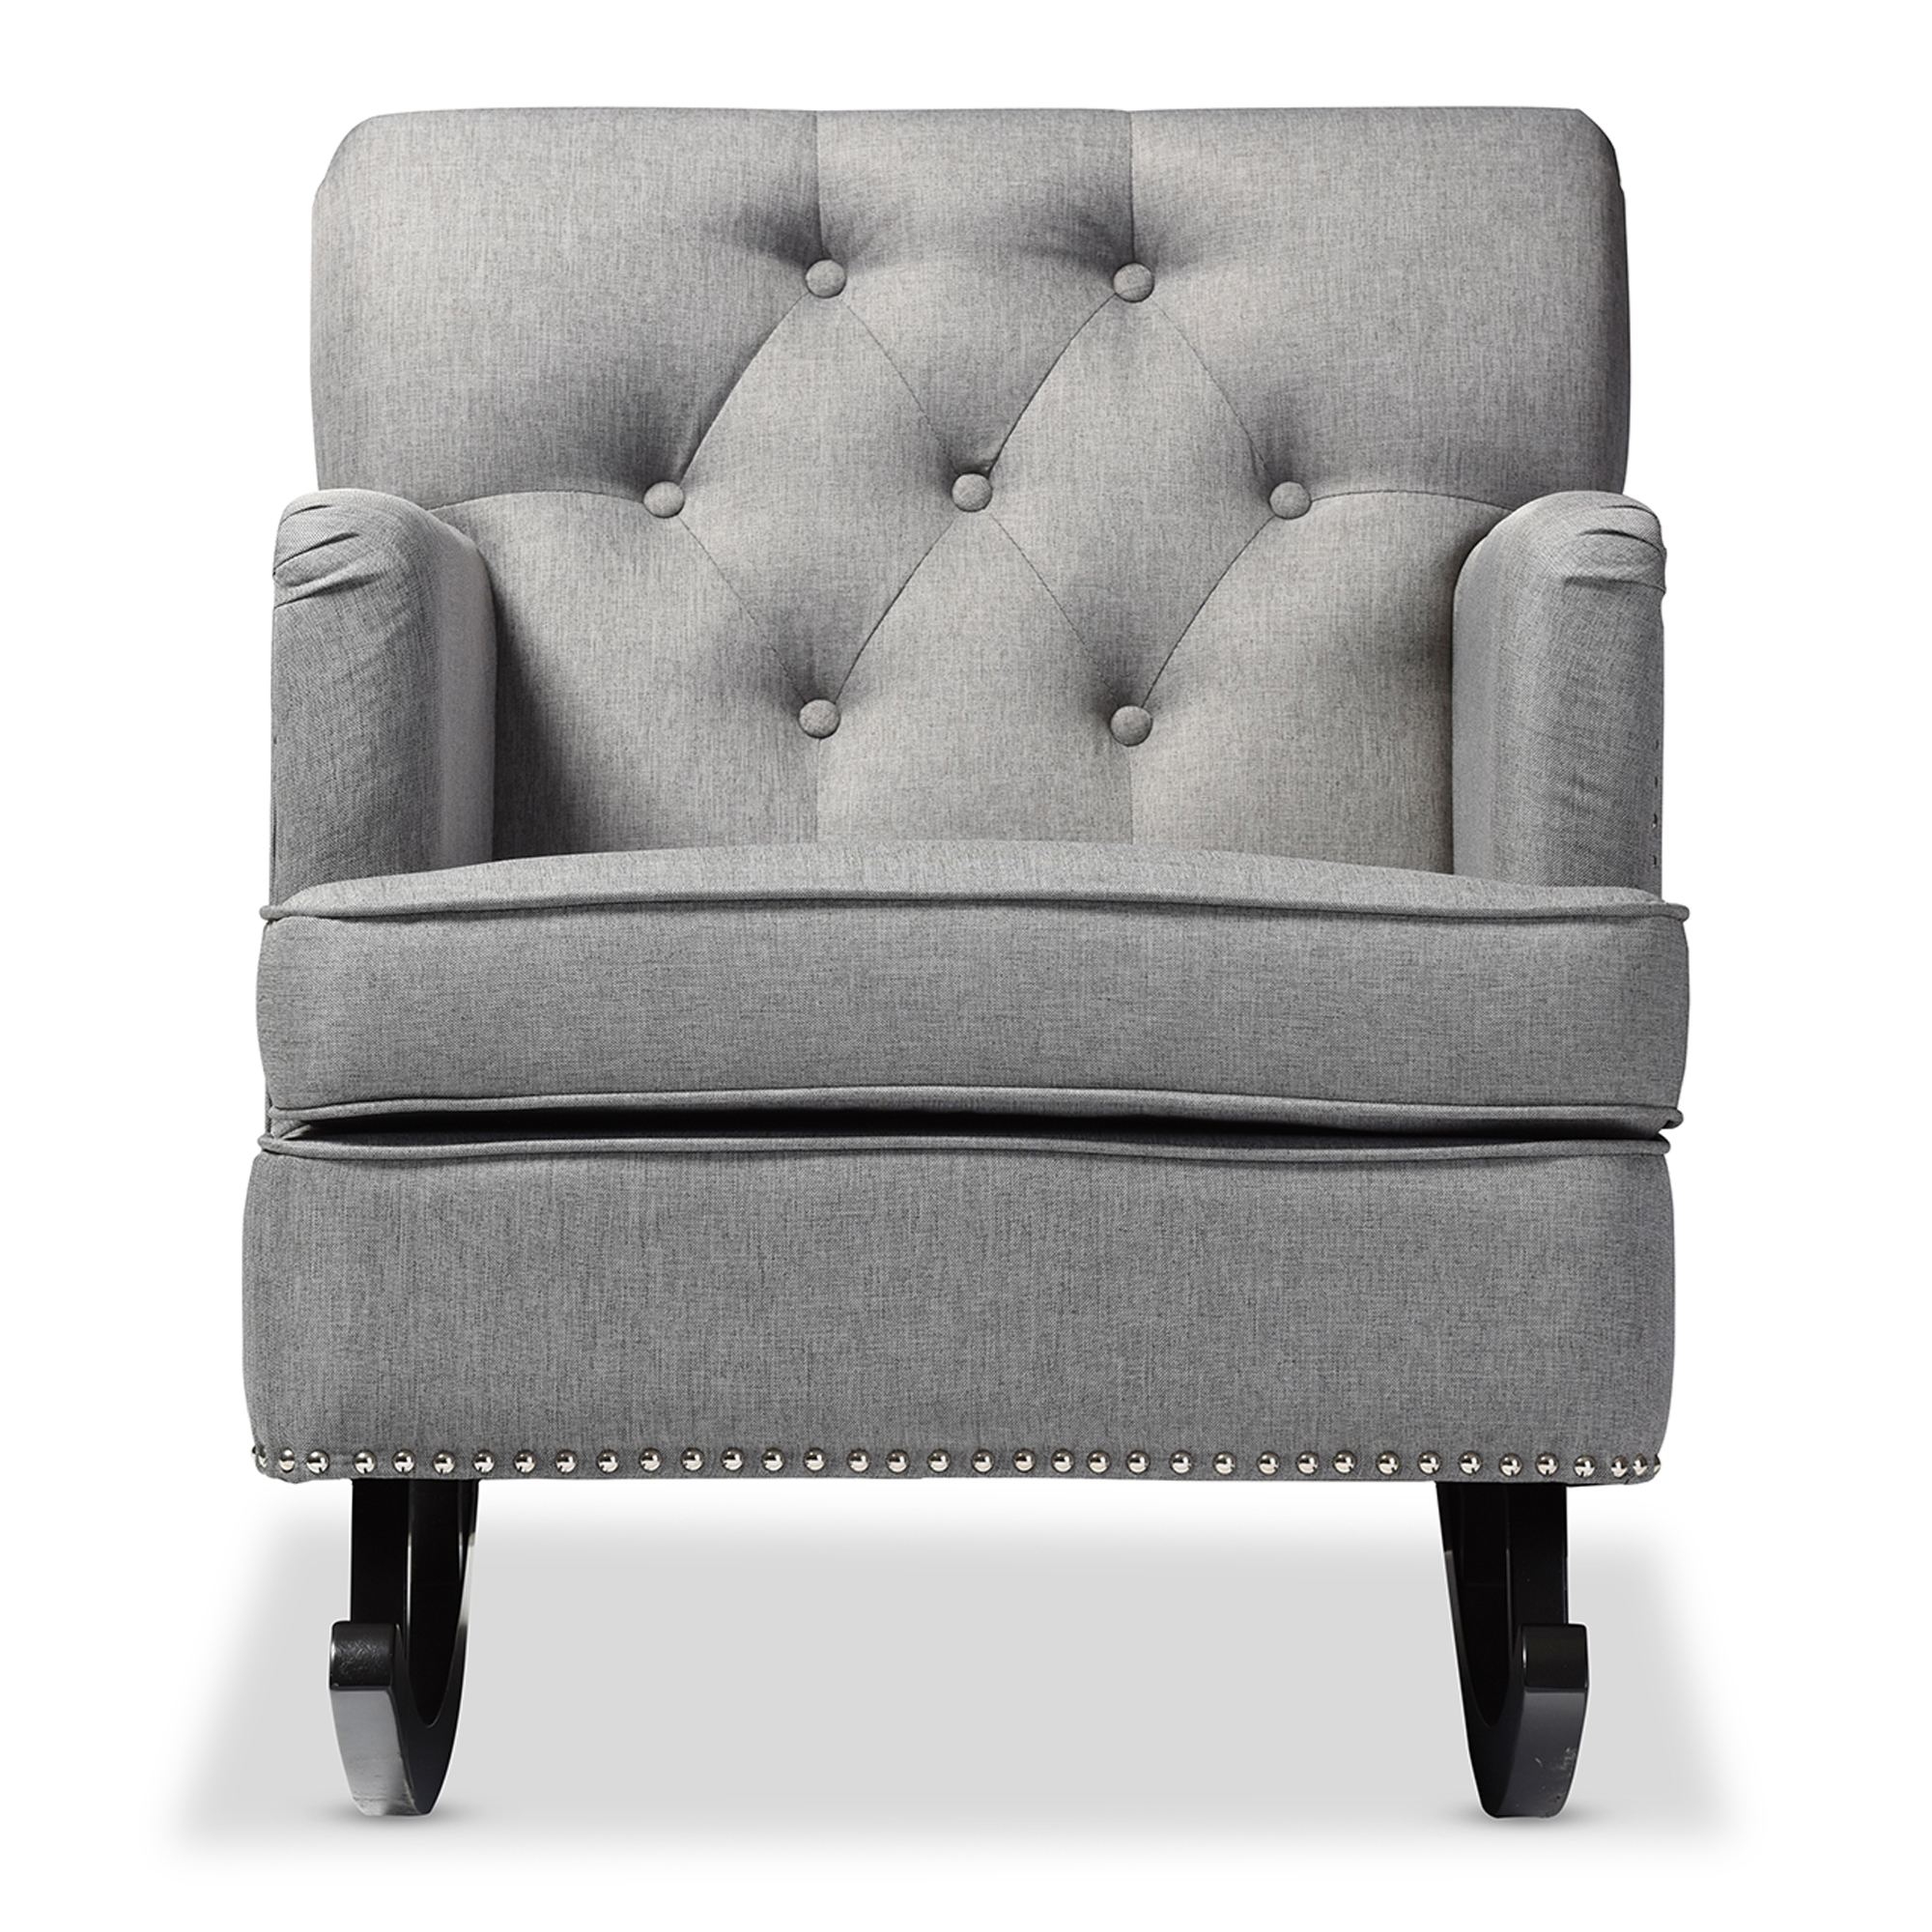 Charmant Baxton Studio Bethany Modern And Contemporary Grey Fabric Upholstered  Button Tufted Rocking Chair   IEBBT5189 ...